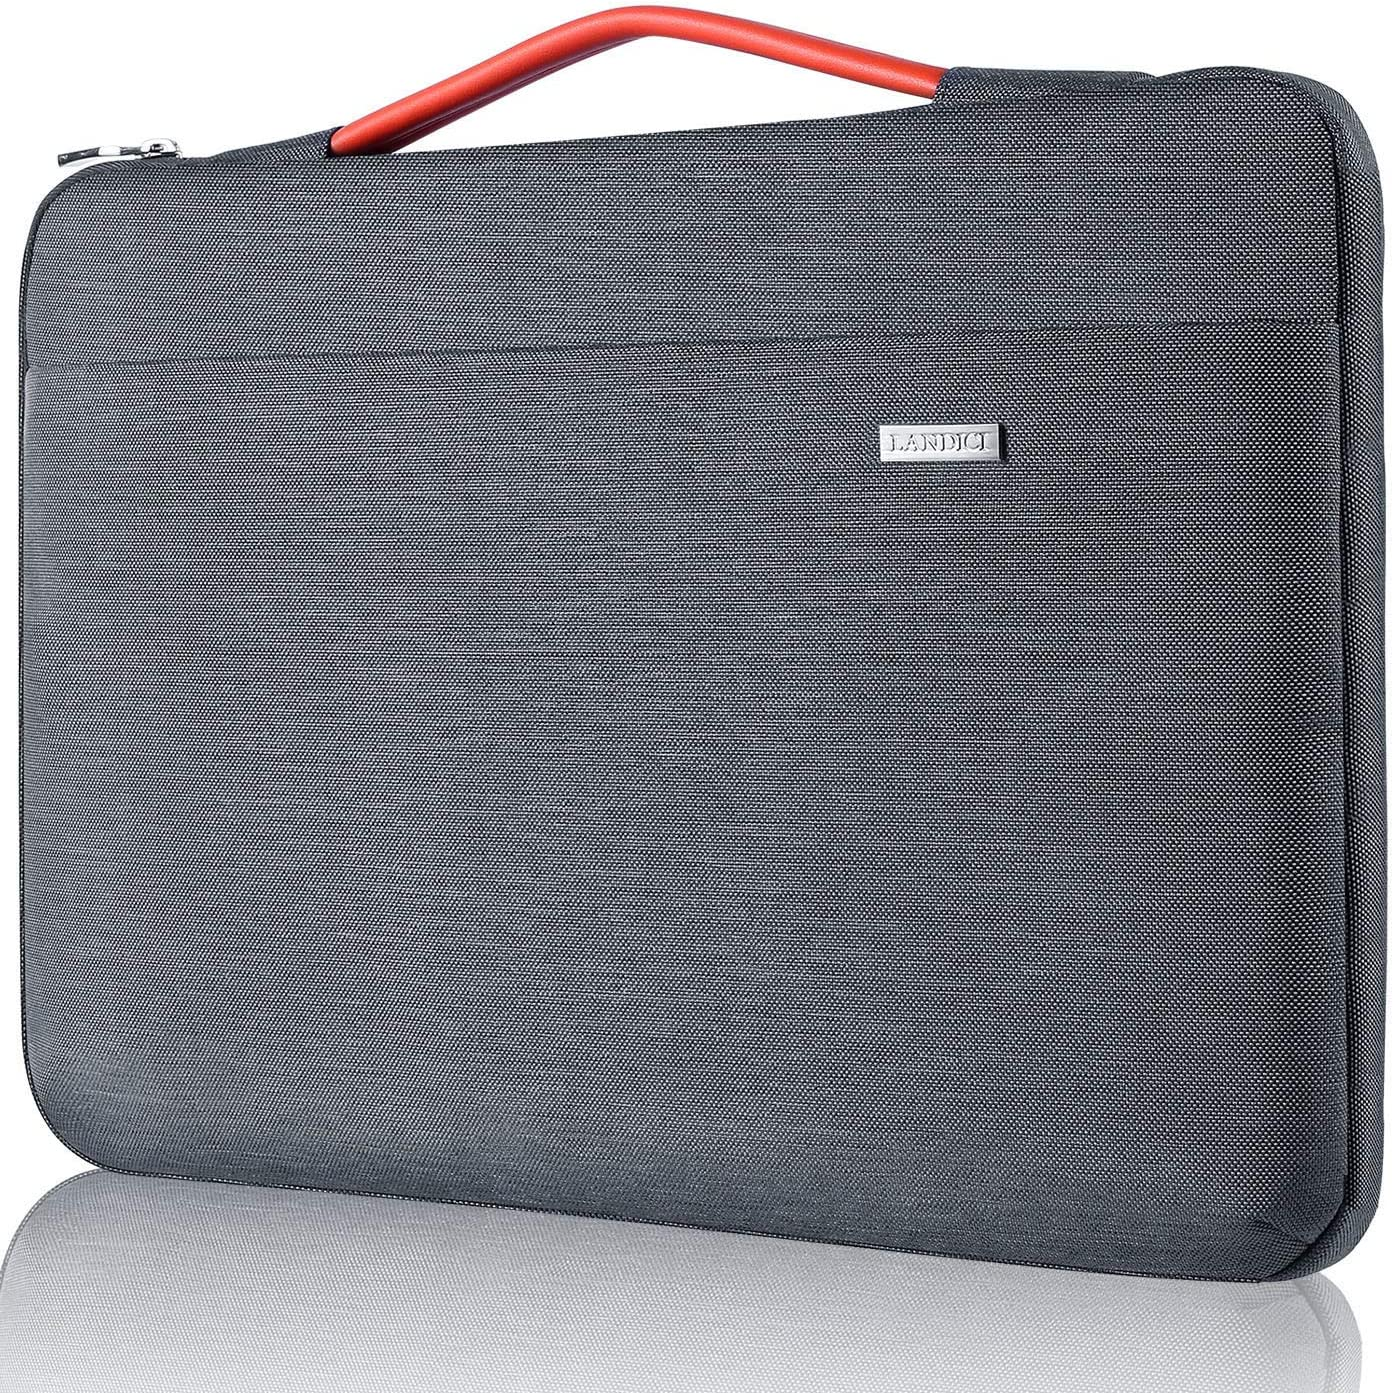 Landici Laptop Case Sleeve 14 15 15.6 Inch with Handle,360/°Protective Waterproof Computer Cover Bag Compatible with 16 MacBook Pro 2020,Surface Book 3//2,ASUS Acer Hp Chromebook-Red